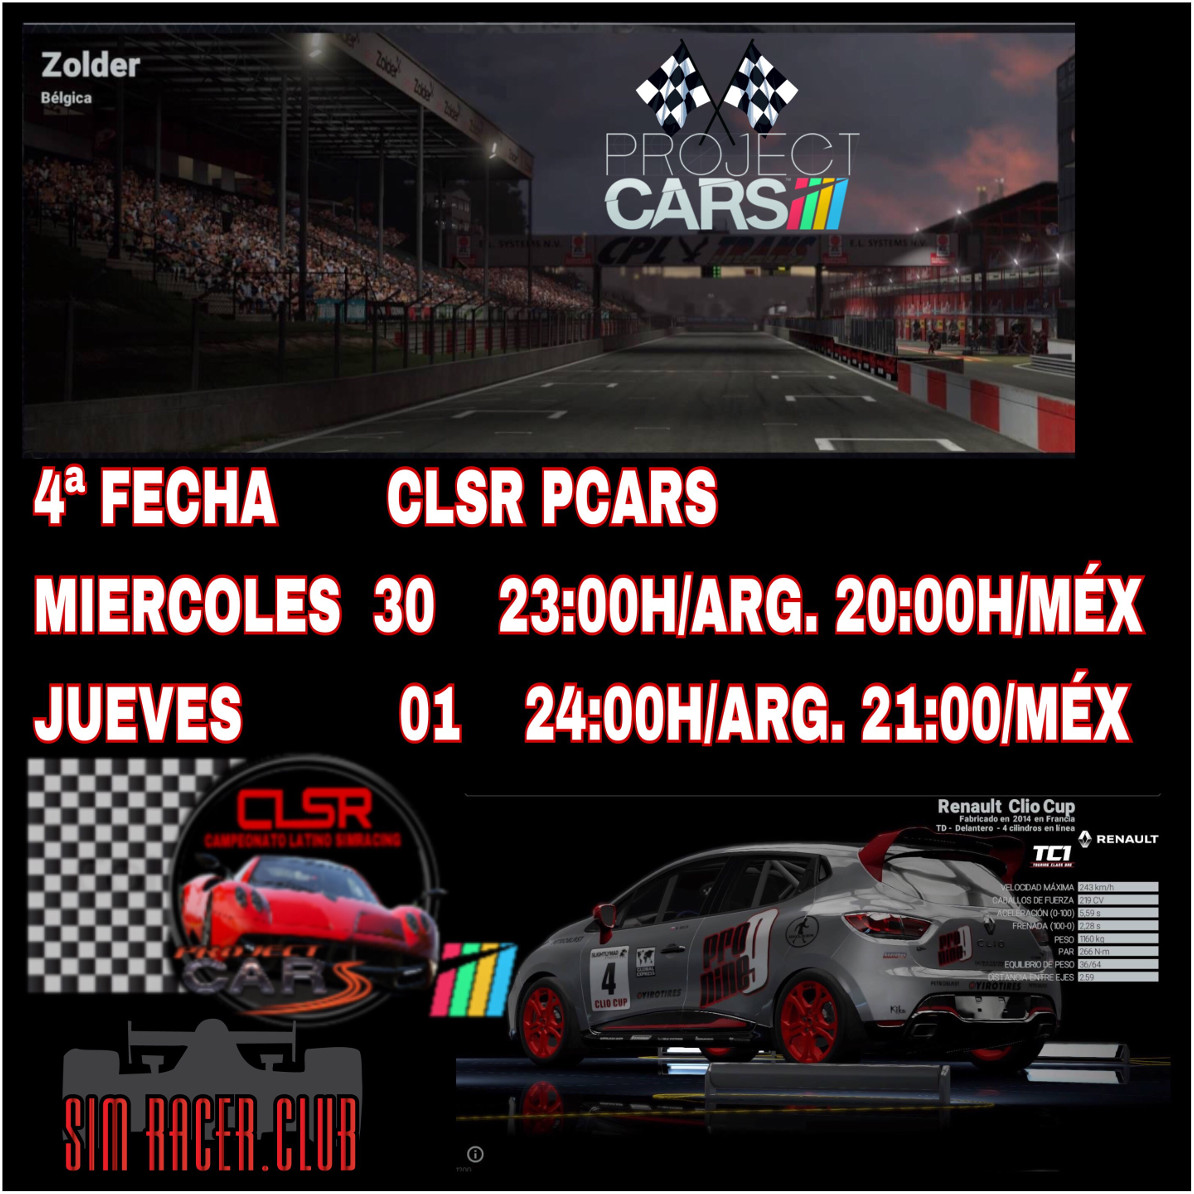 project cars fecha 4 zolder 2b0ff